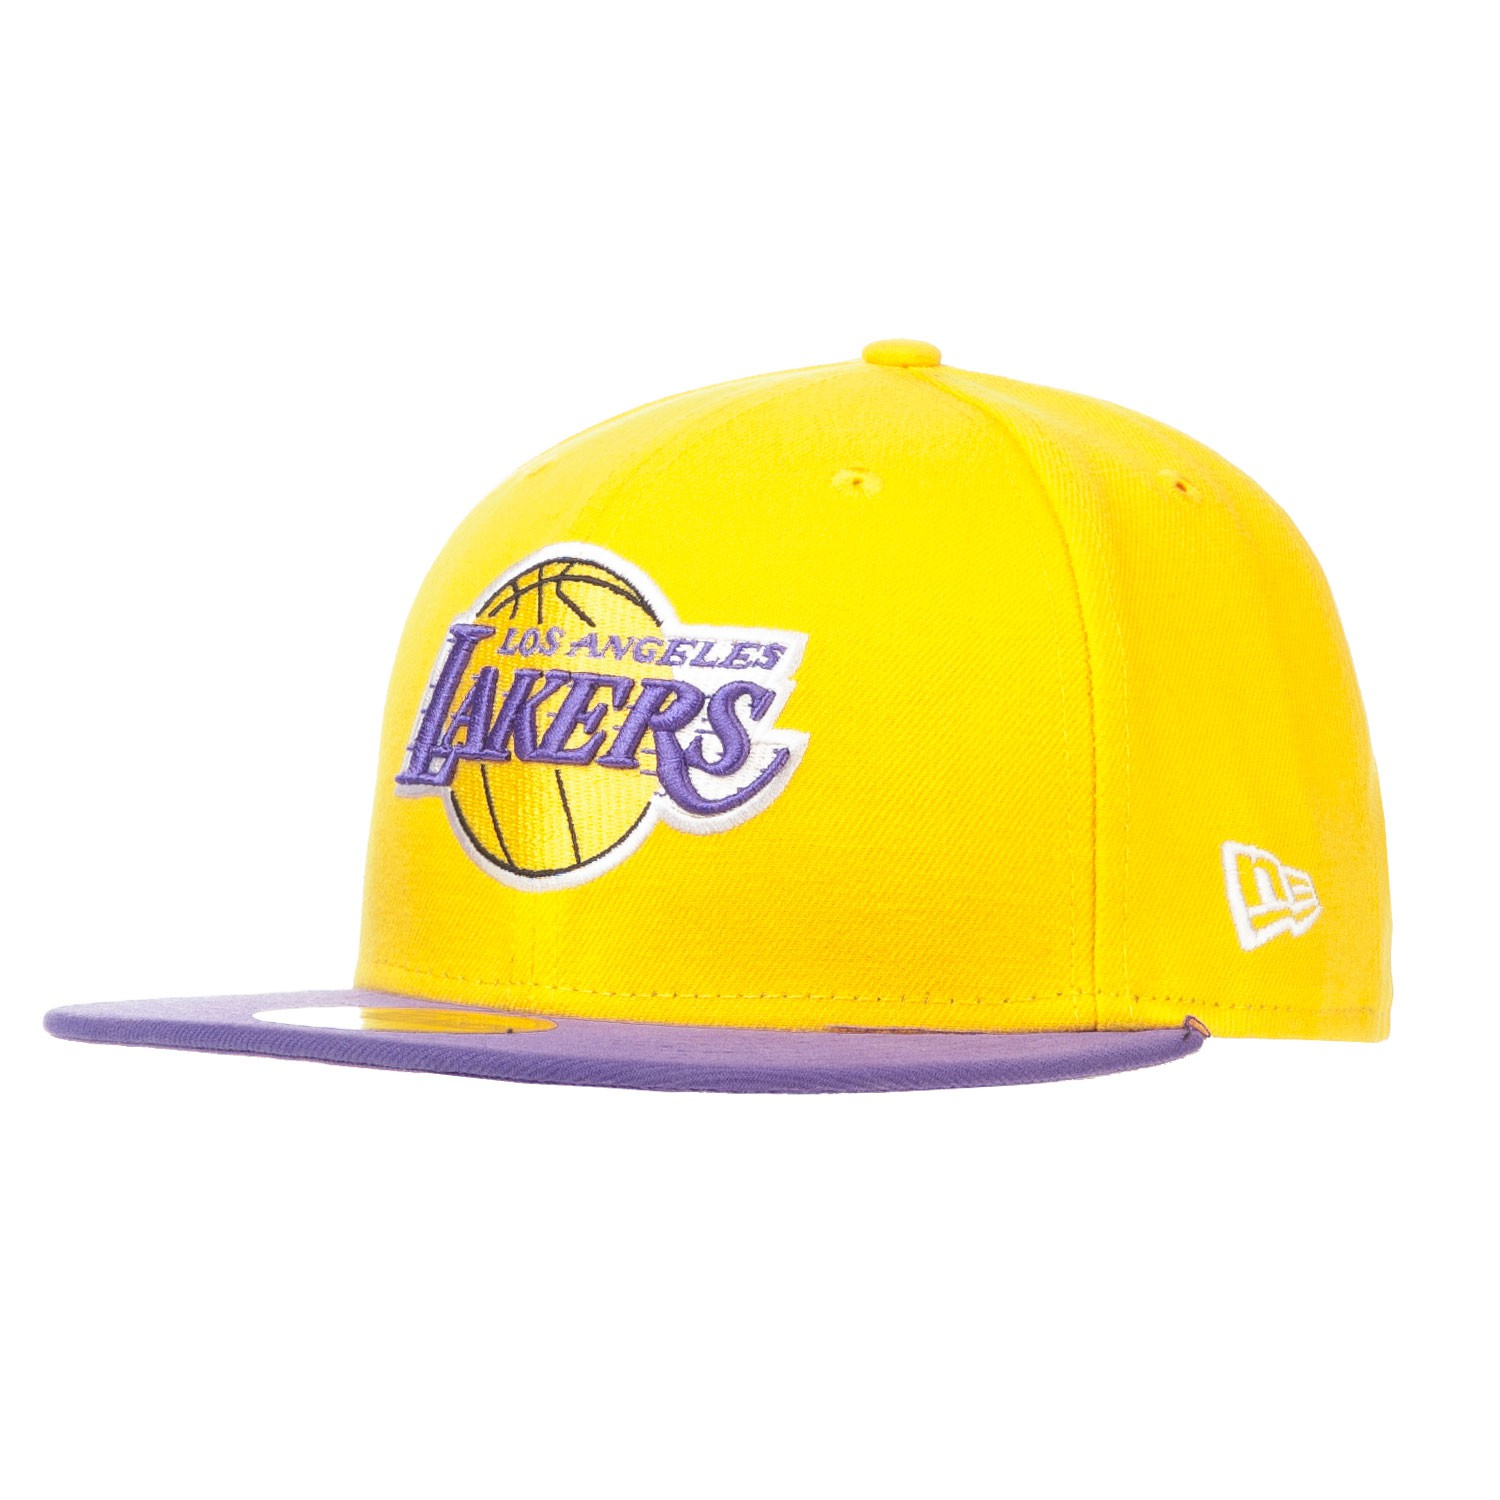 Kšiltovka New Era Los Angeles Lakers 59Fif Basic yellow/purple